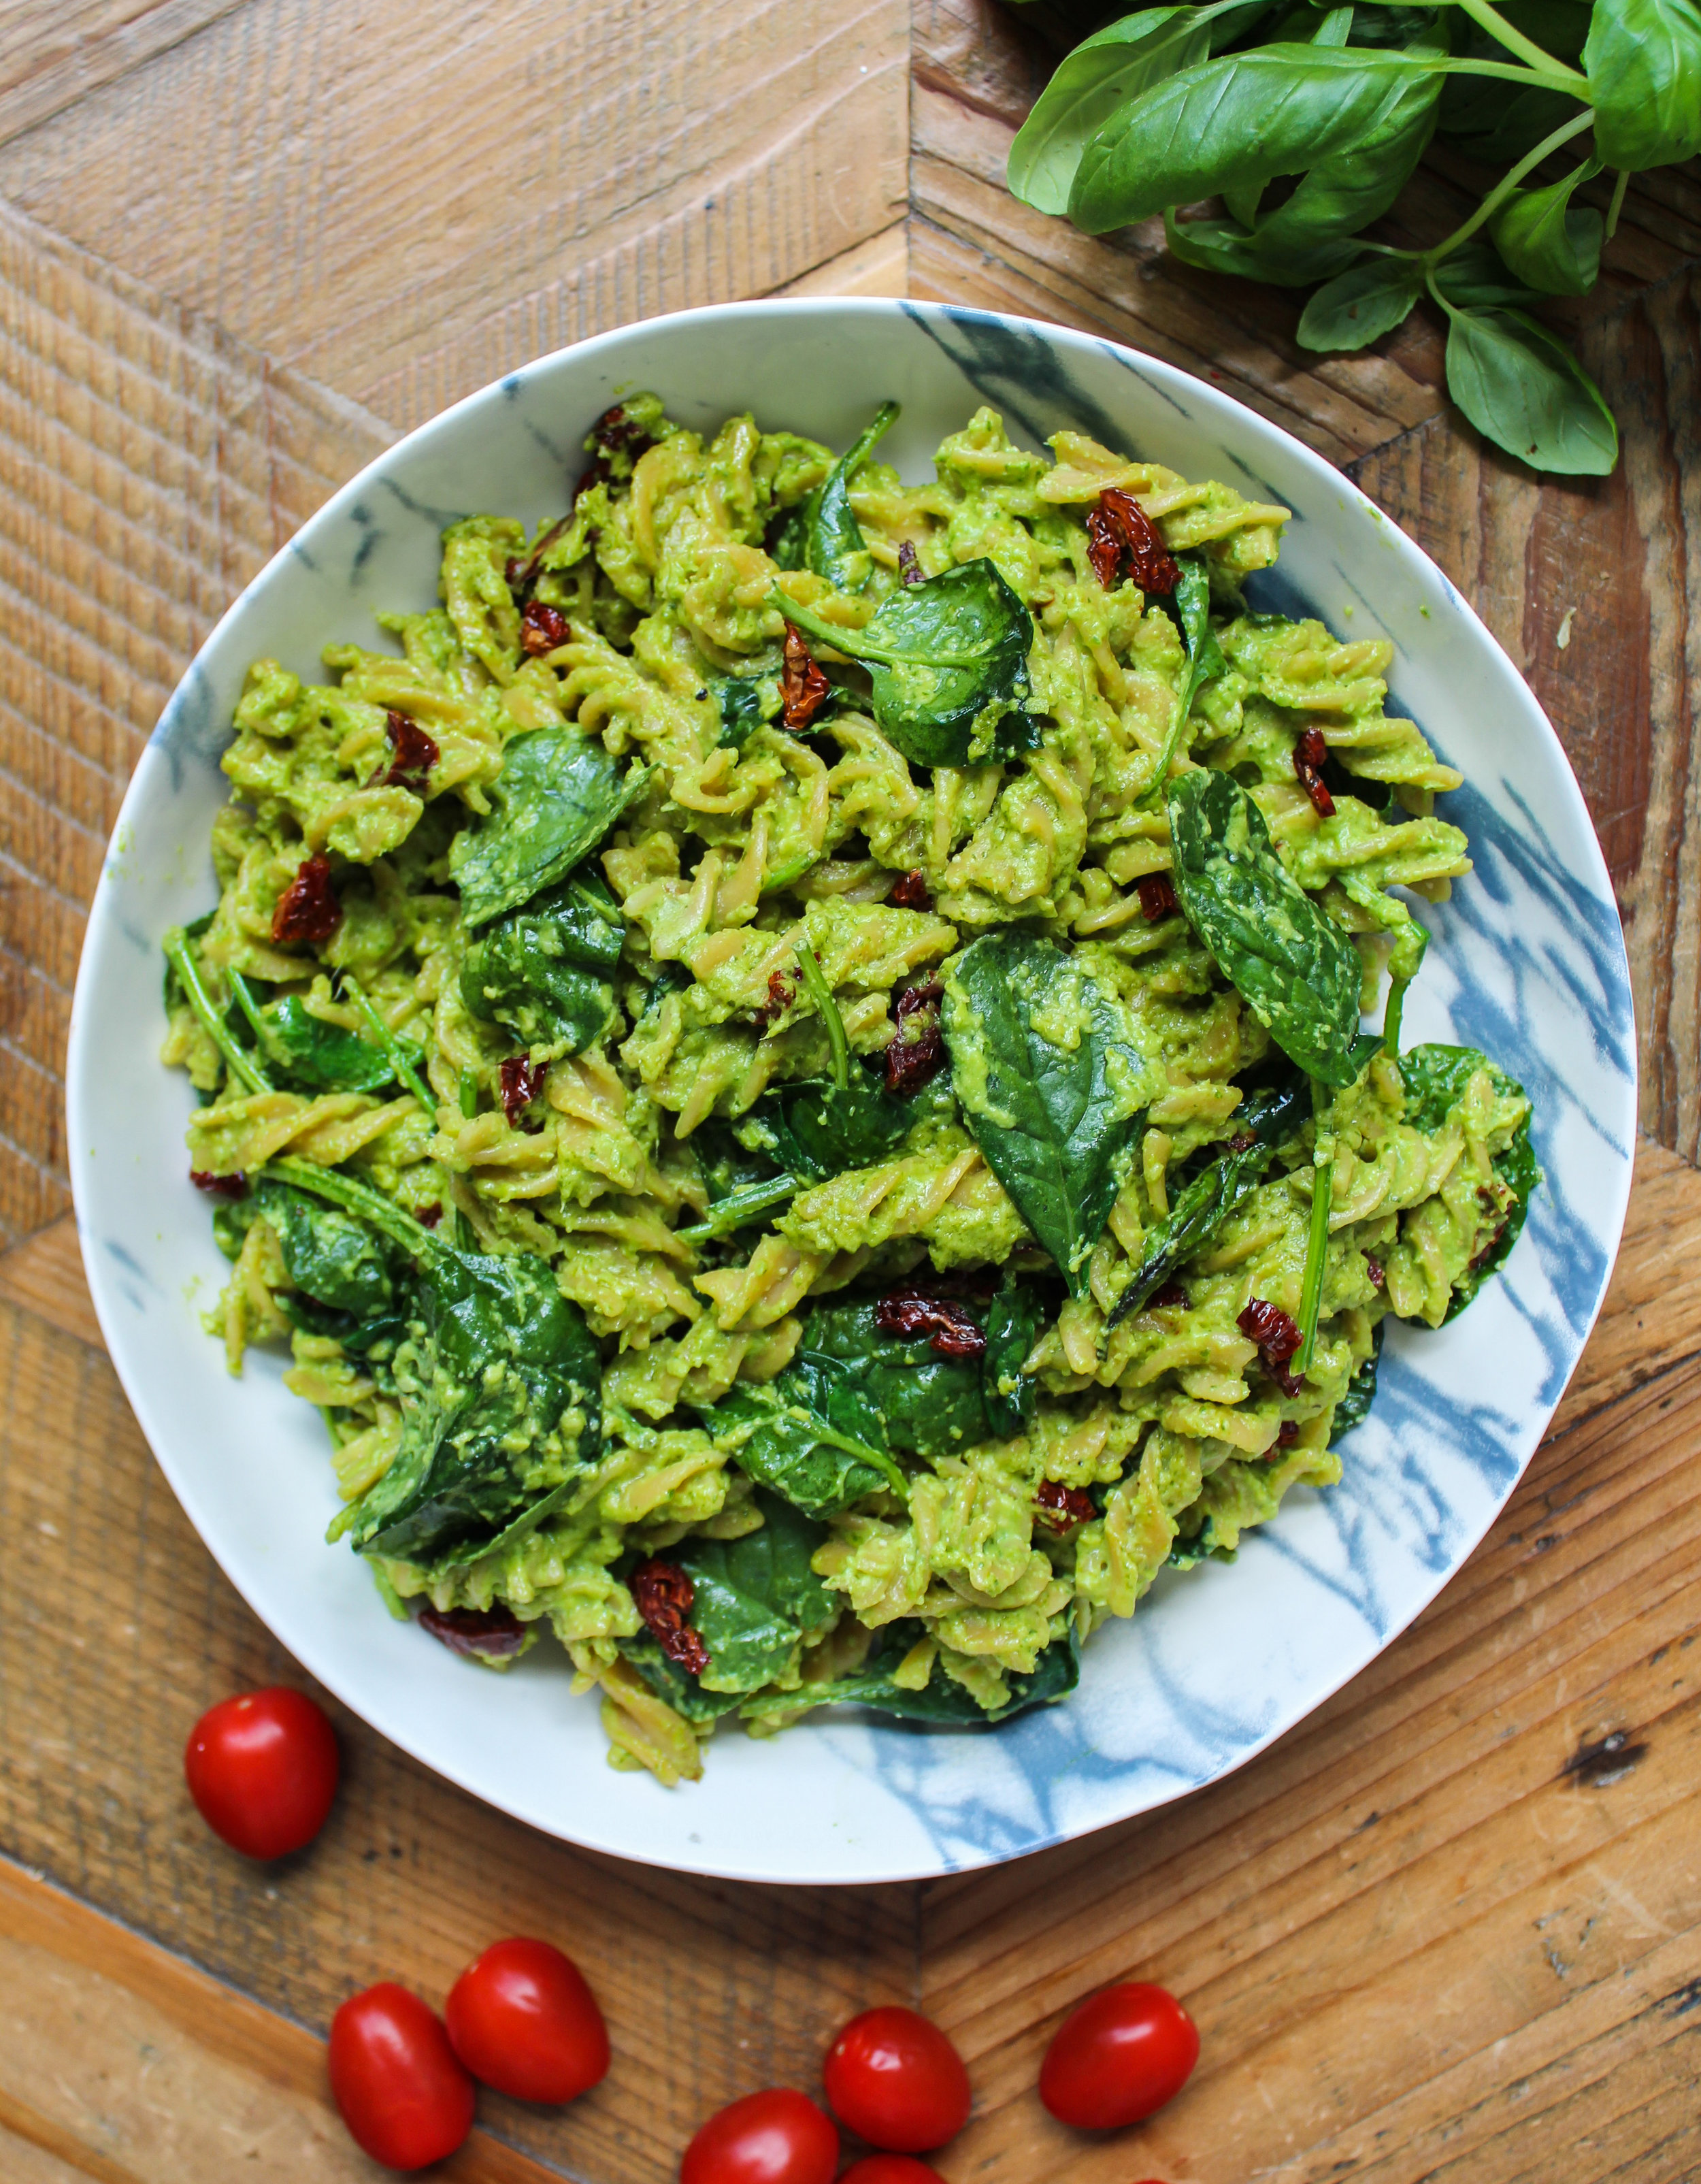 PESTO PASTA WITH SUNDRIED TOMATOES - vegan, dairy free, gluten free, egg free, healthy, high protein, easy,greens, recoveringraw.com